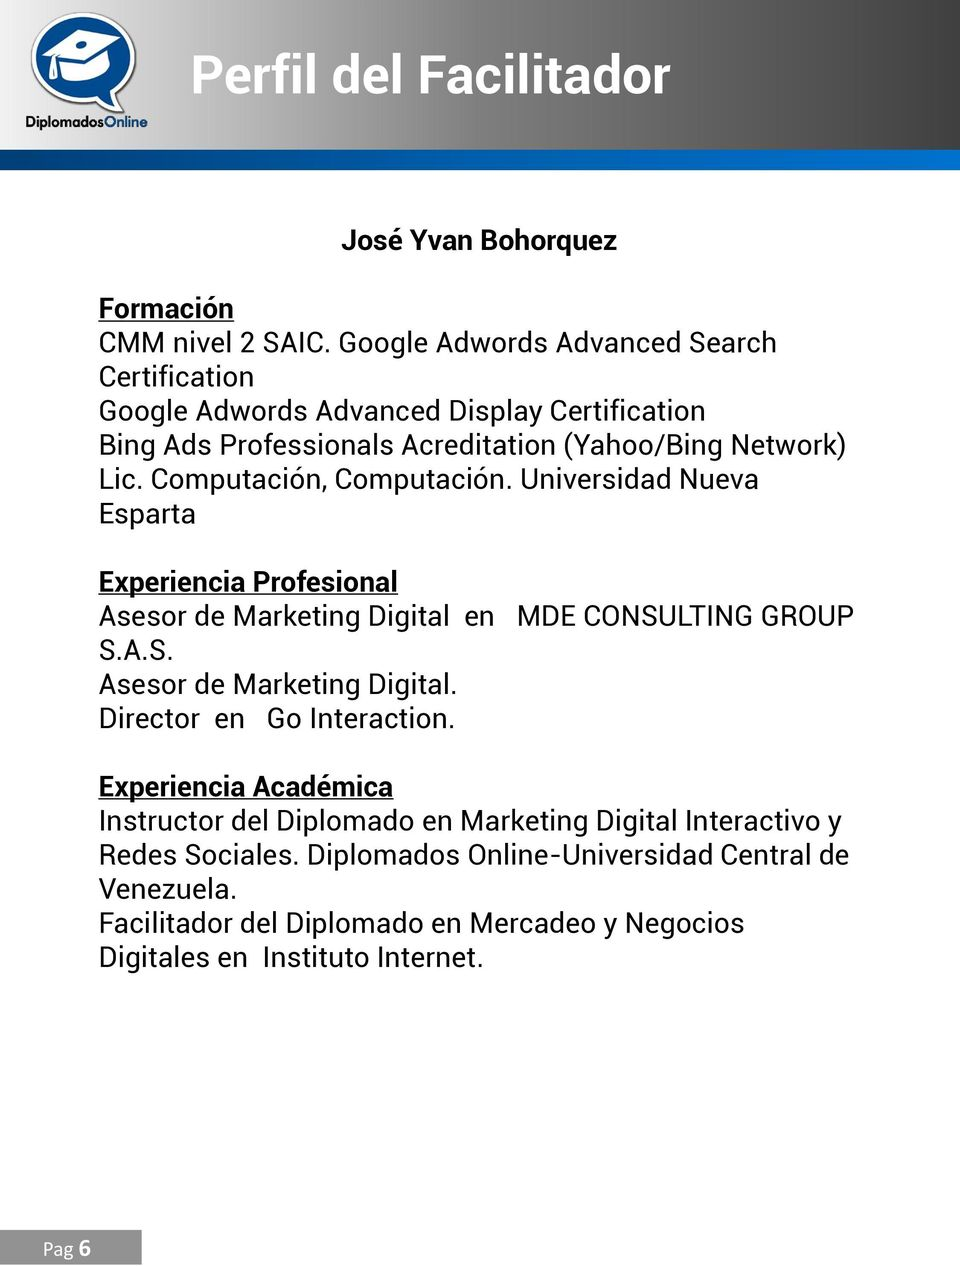 Computación, Computación. Universidad Nueva Esparta Experiencia Profesional Asesor de Marketing Digital en MDE CONSULTING GROUP S.A.S. Asesor de Marketing Digital. Director en Go Interaction.